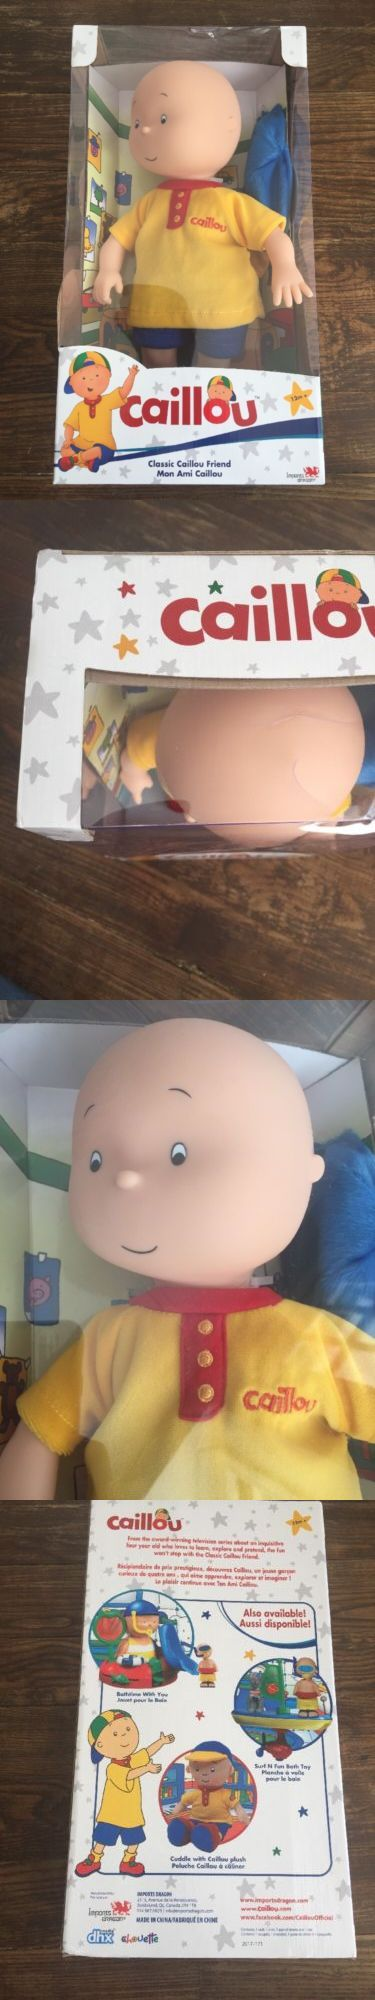 Caillou 20903: Caillou Classic Friend Doll 14 Brand New In Original Box -> BUY IT NOW ONLY: $85 on eBay!